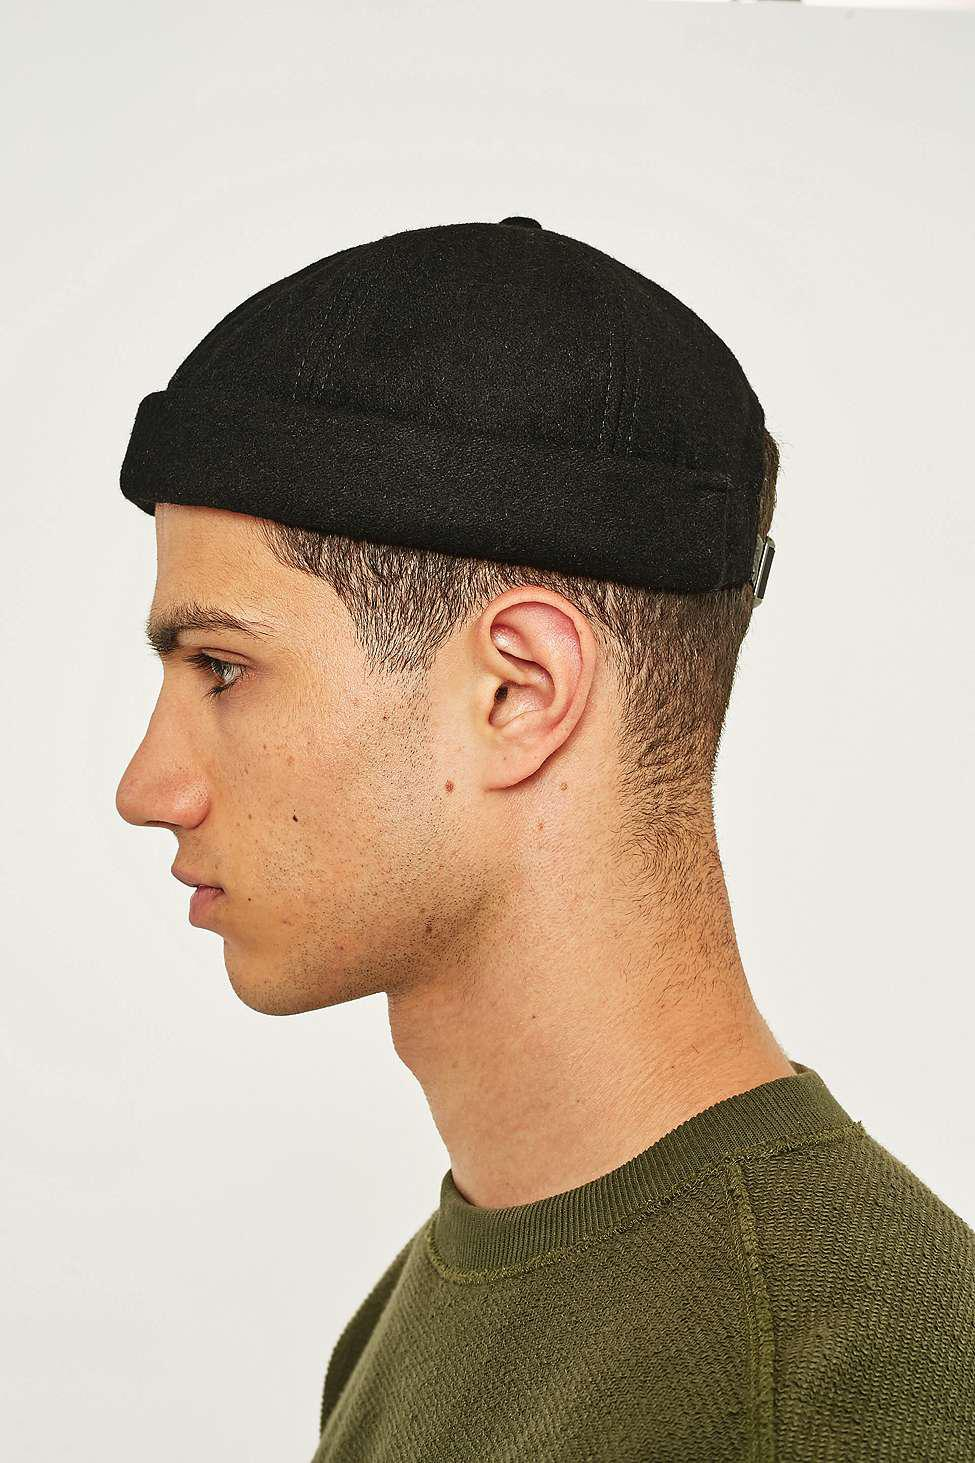 Urban Outfitters Uo Black Melton Docker Cap - Mens All in Black for ... 628f97100f5